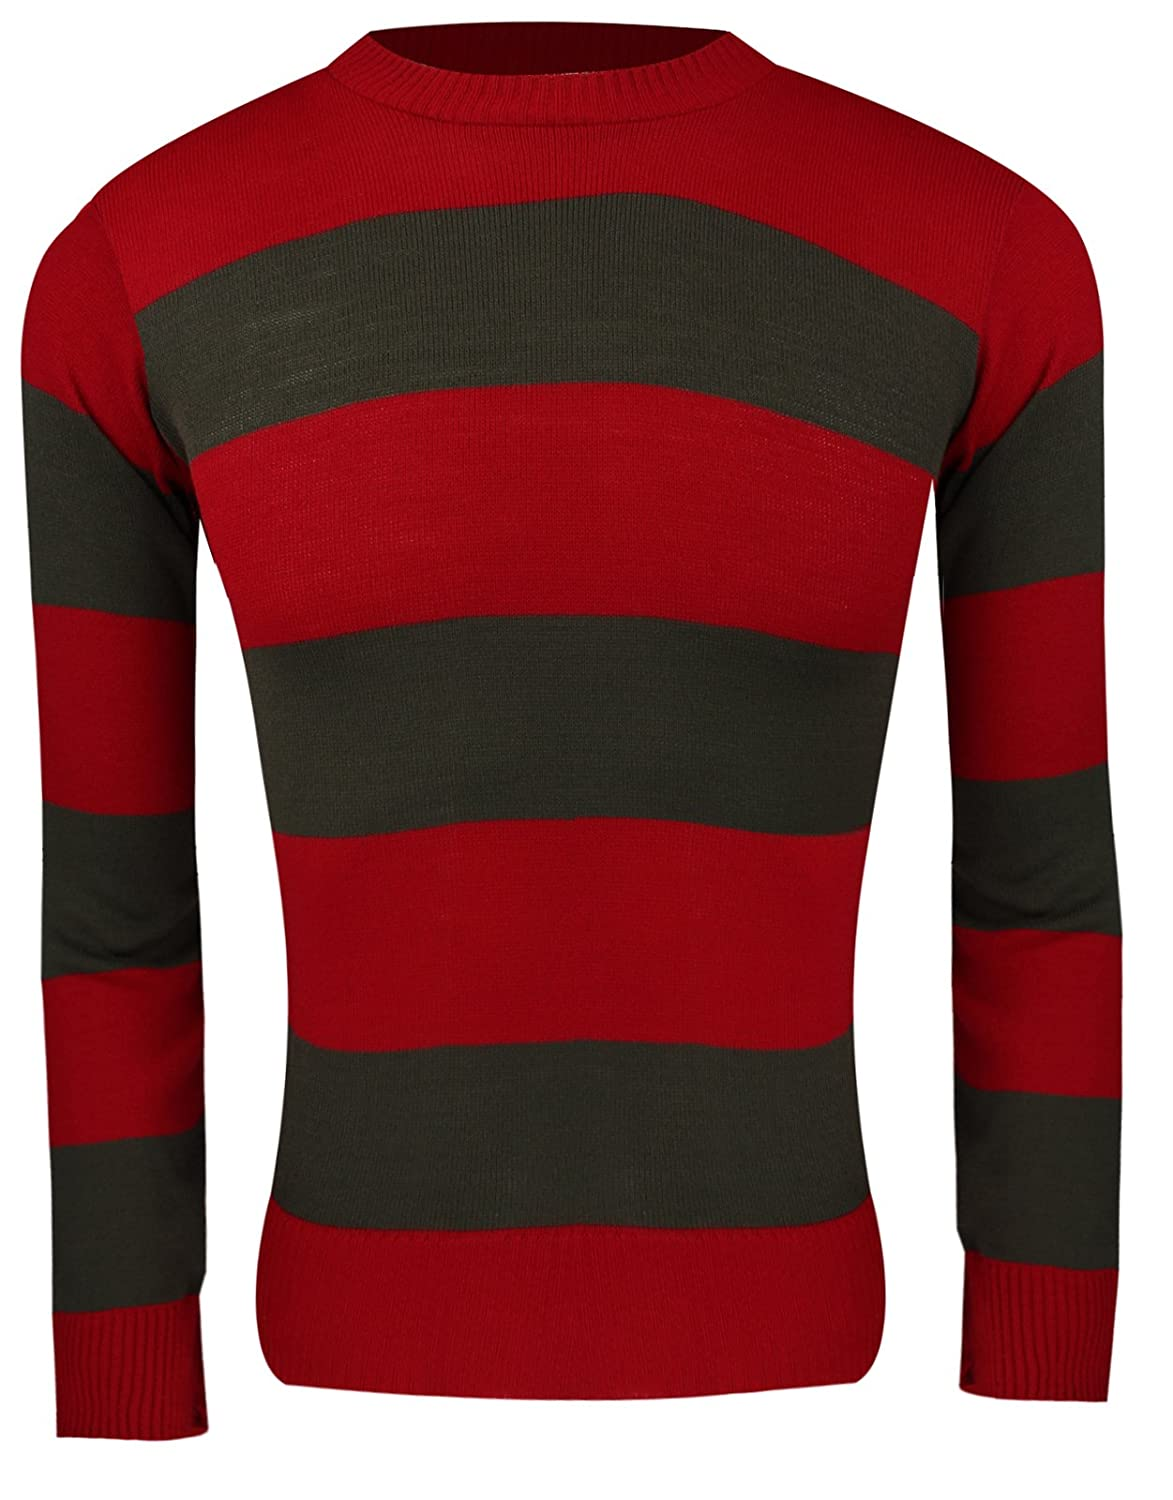 B Children Freddy Dennis RED & White Striped Knitted Jumper Sweater (Small (7-8YRS), Freddy Jumper)